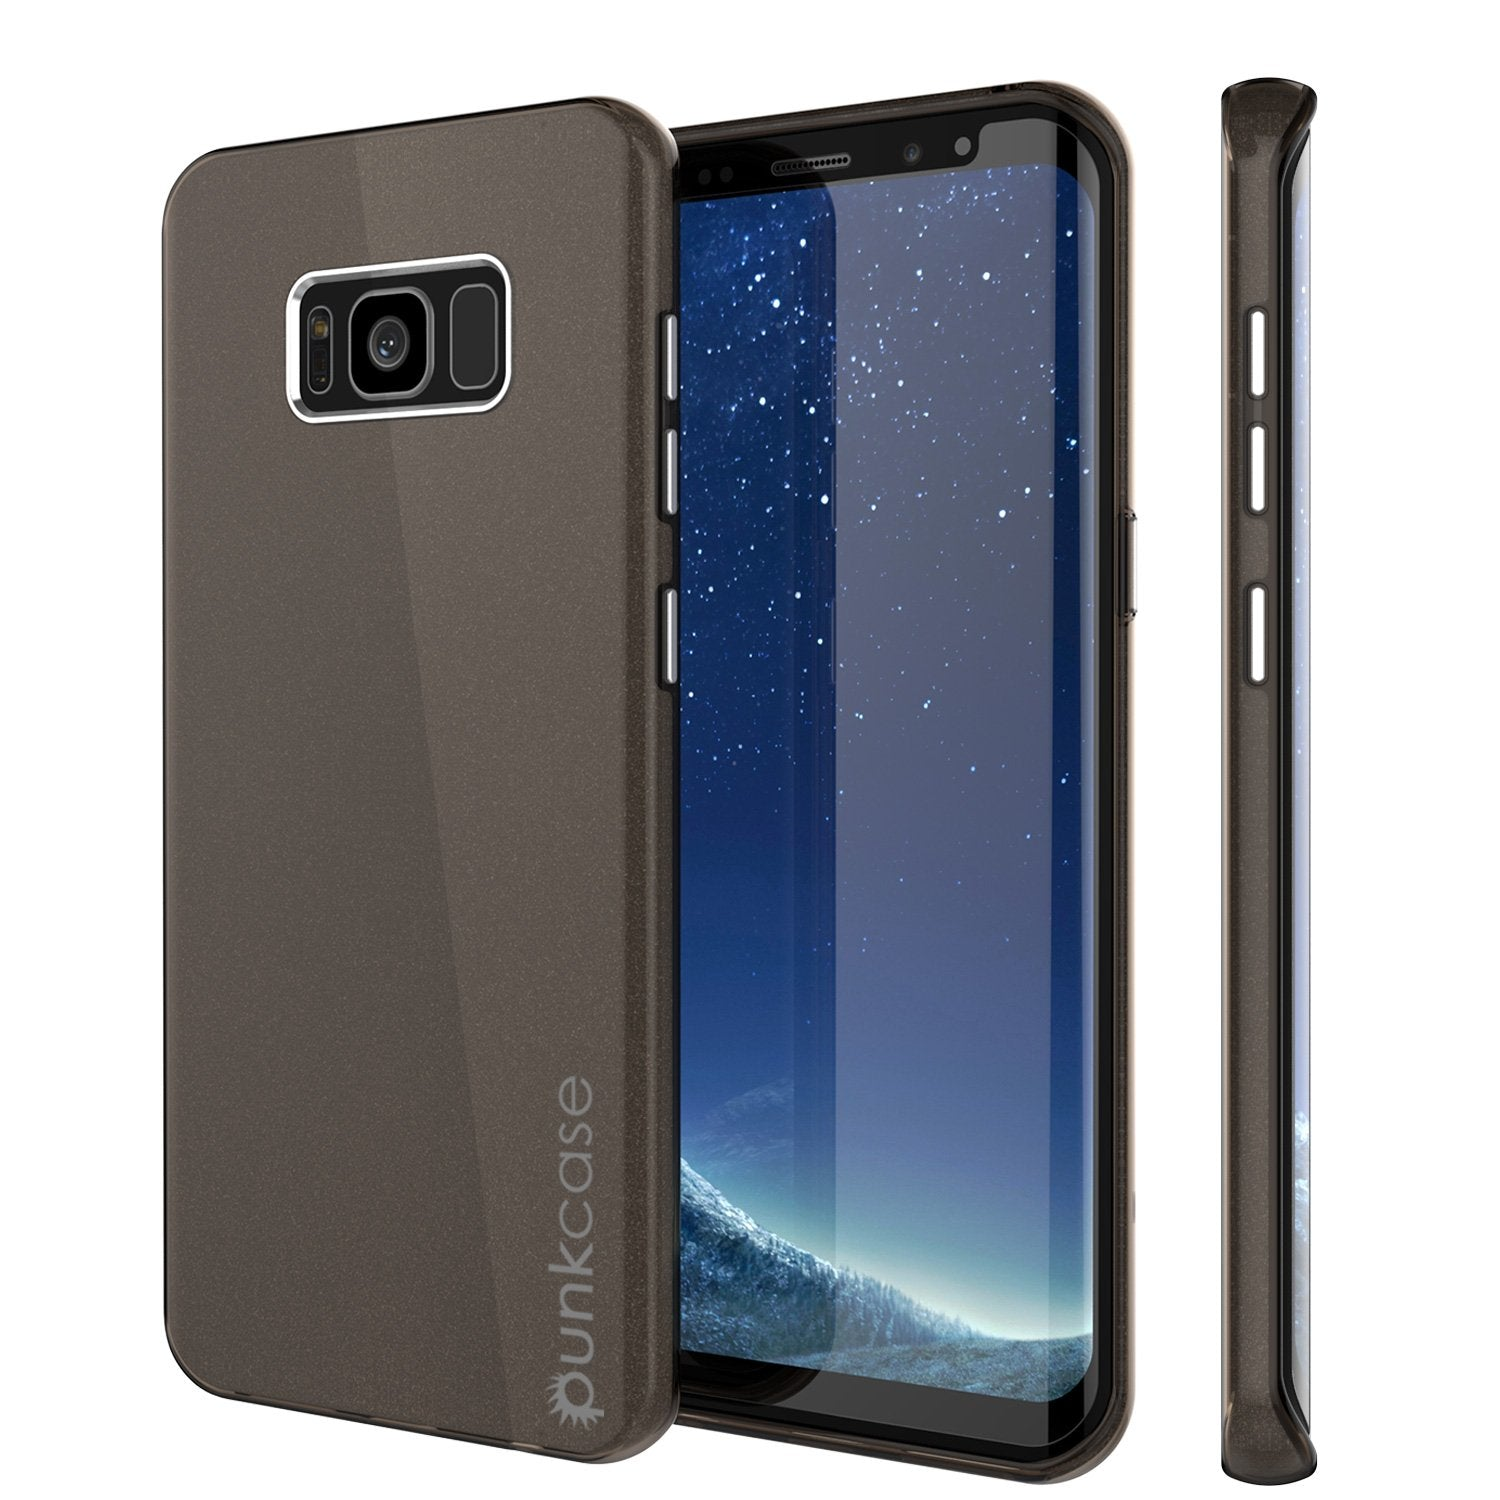 Galaxy S8 Plus Punkcase Galactic 2.0 Series Ultra Slim Case [Black]